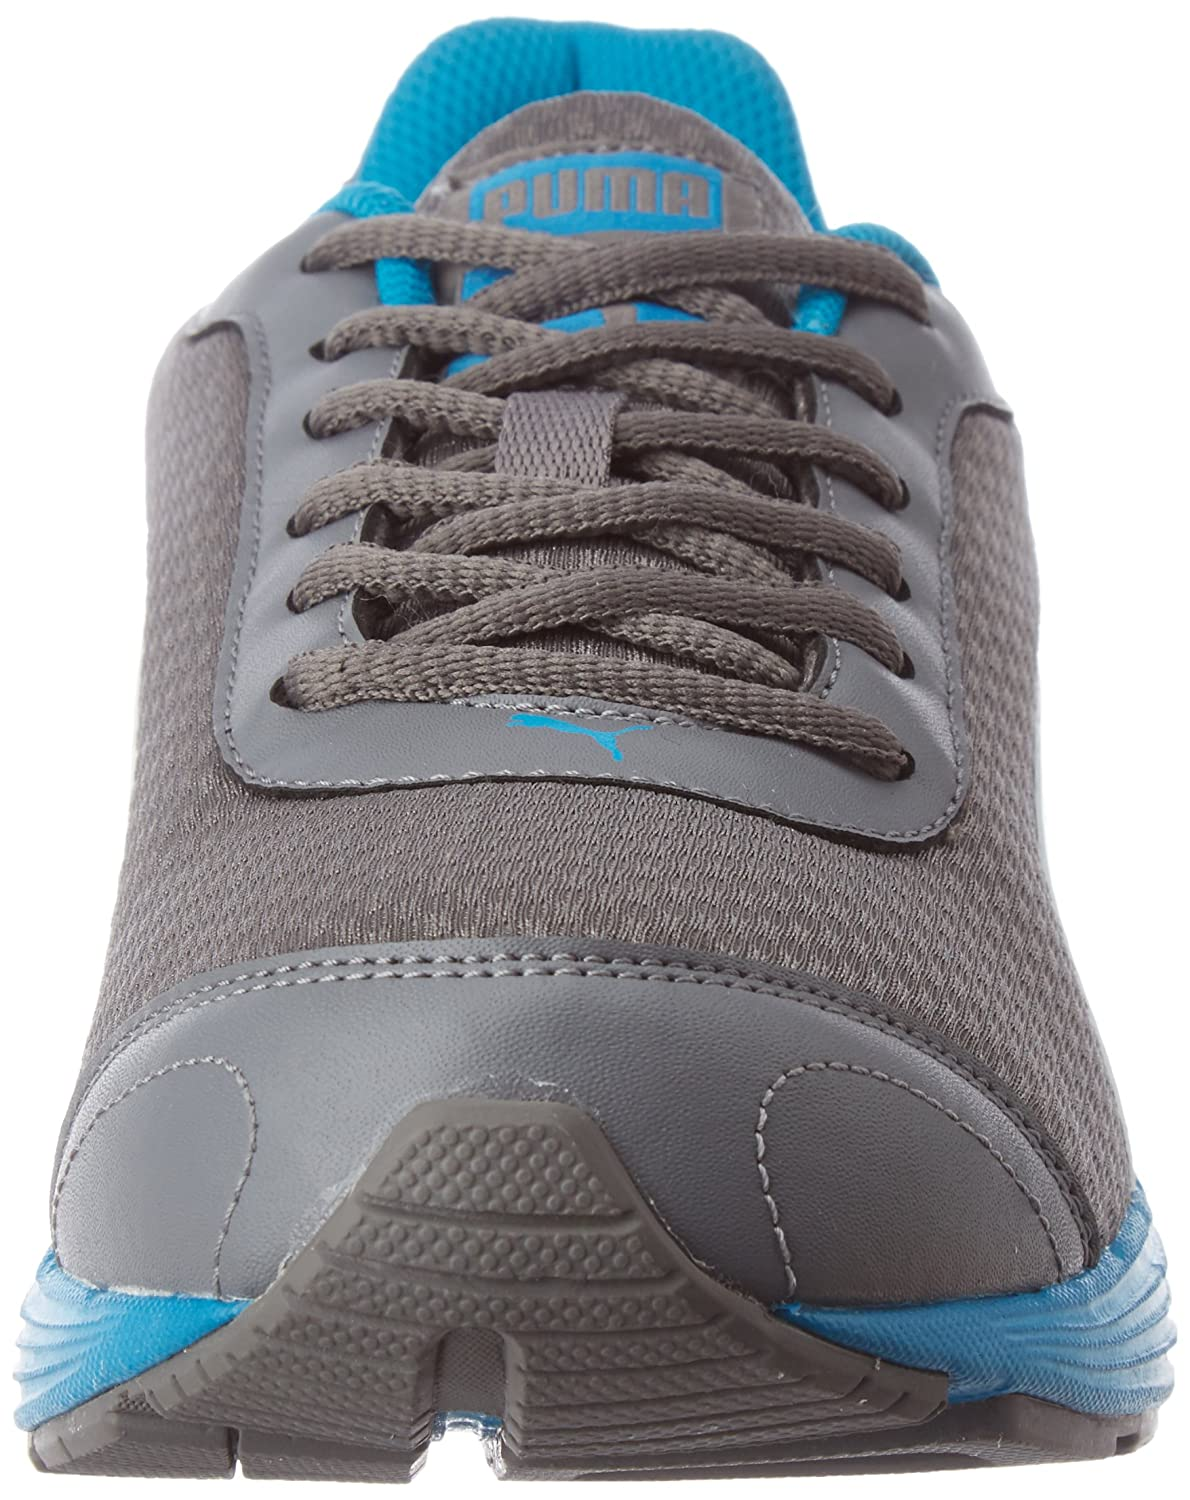 f3317aac469c0a Puma Men s Reef Fashion Dp Running Shoes  Buy Online at Low Prices in India  - Amazon.in